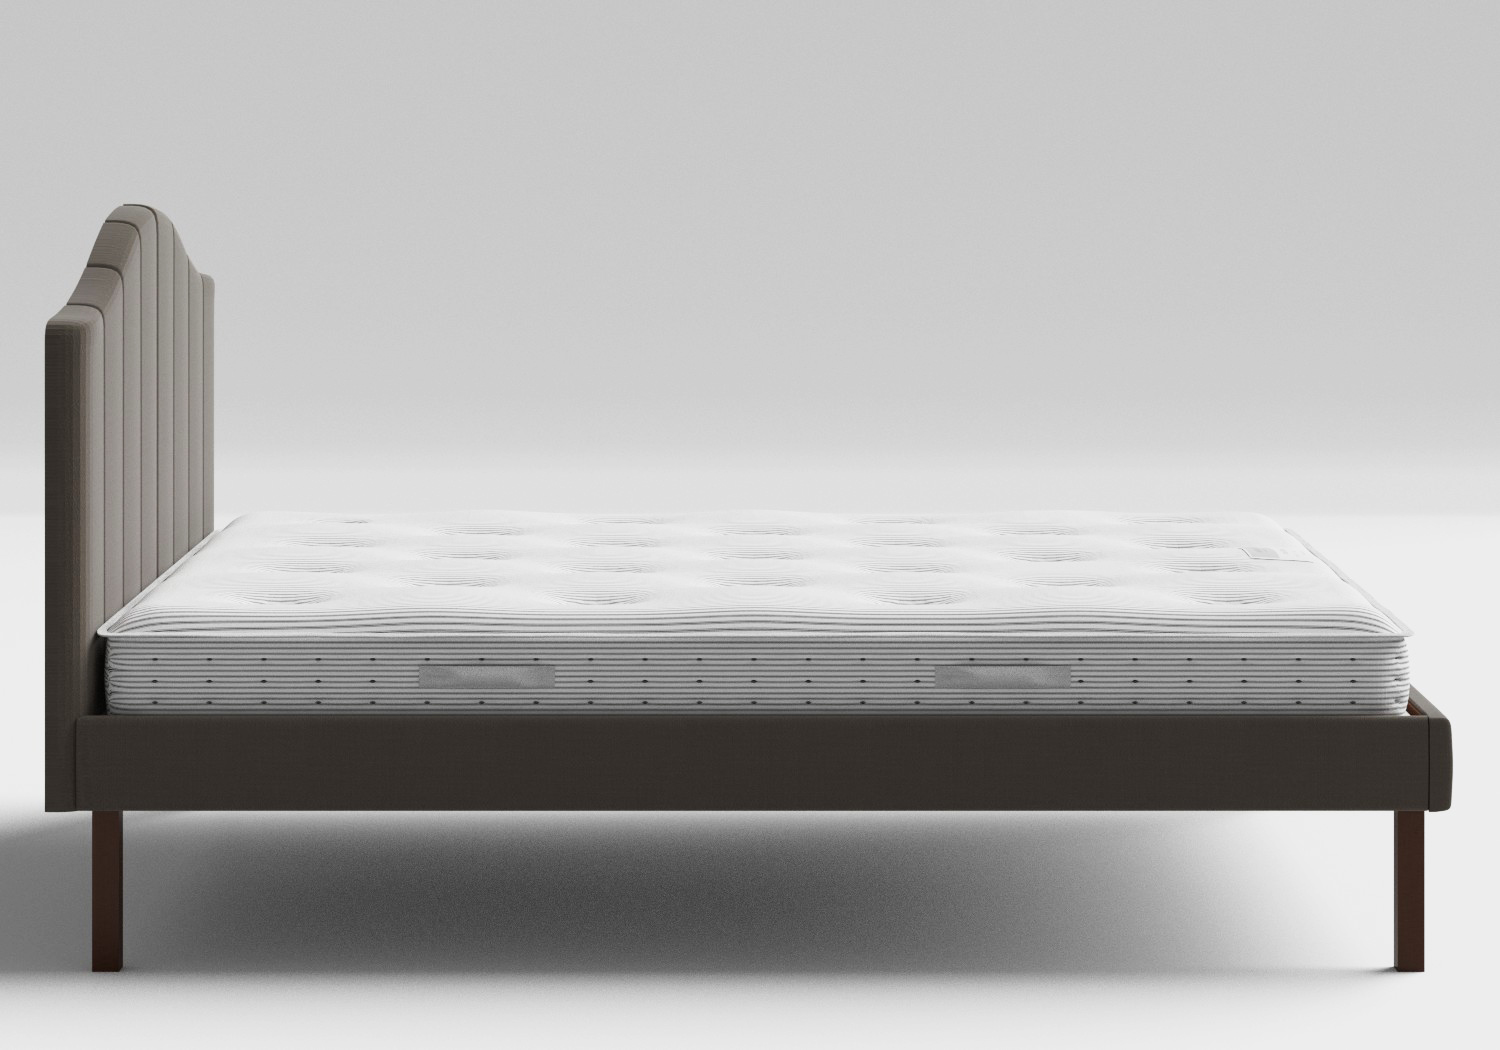 Yoshida Upholstered Bed with Grey fabric shown with Juno 1 mattress